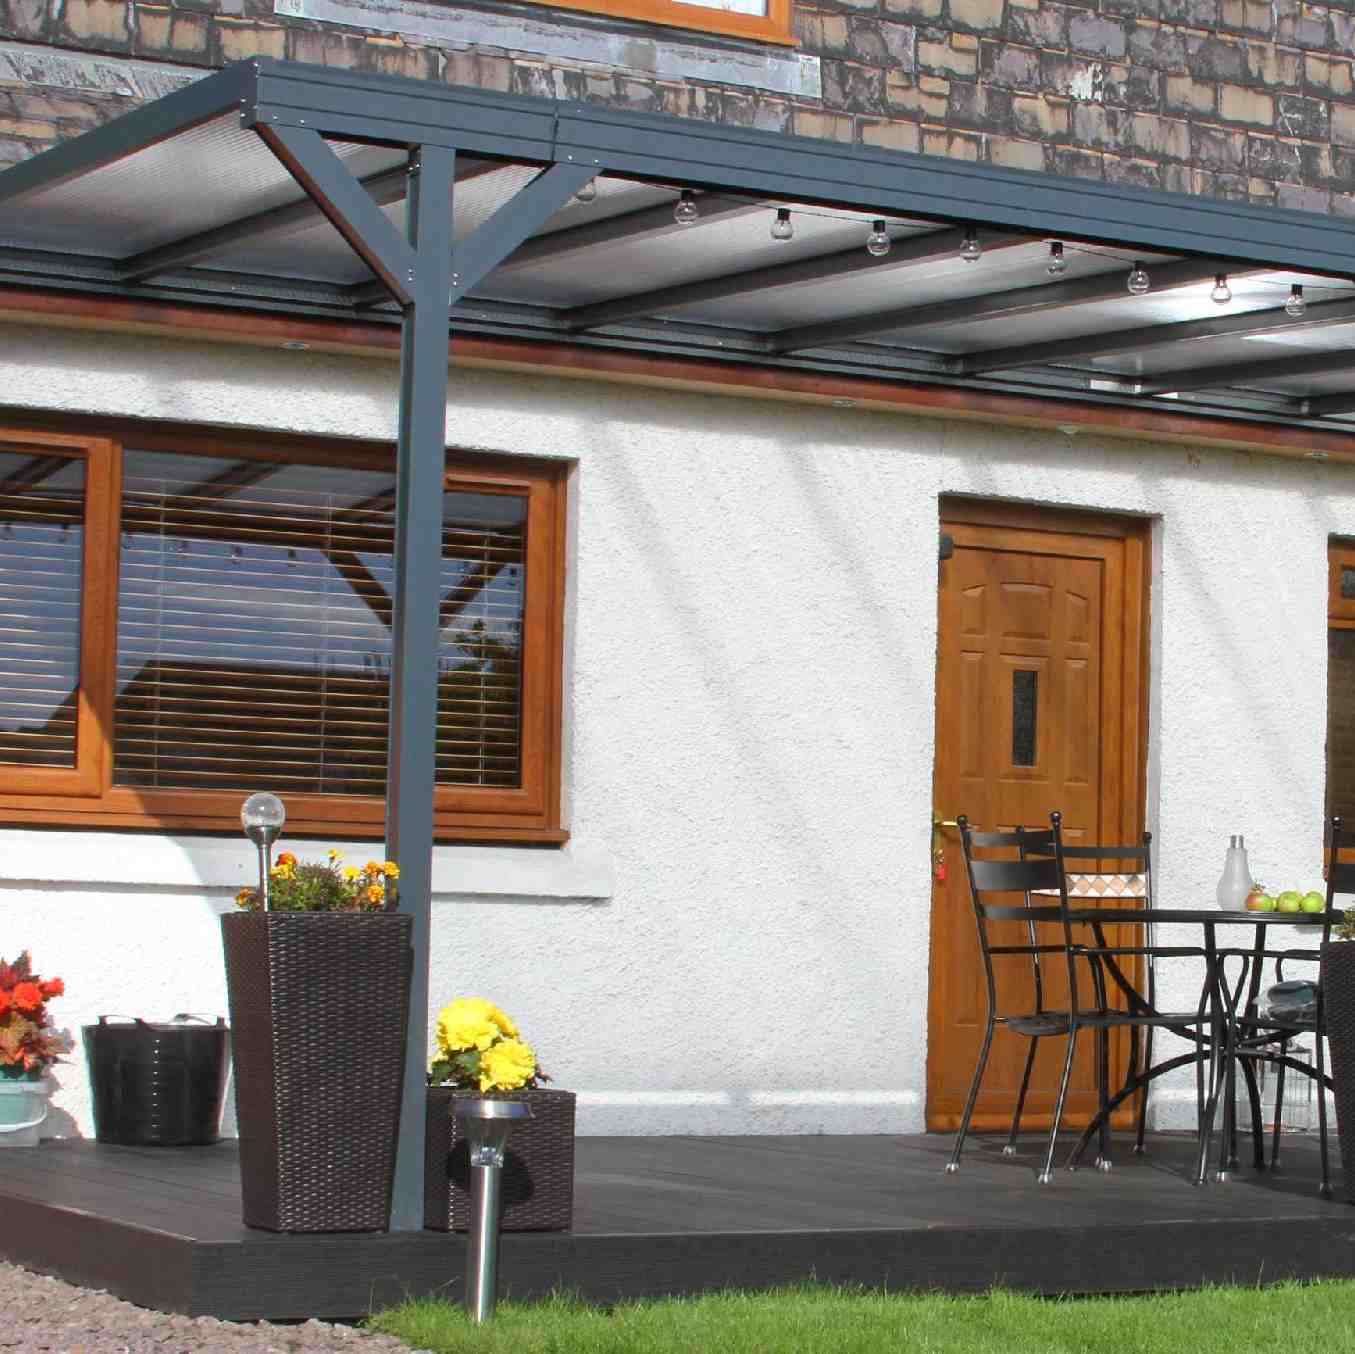 Omega Verandah, Anthracite Grey, 6mm Glass Clear Plate Polycarbonate Glazing - 10.5m (W) x 2.0m (P), (5) Supporting Posts